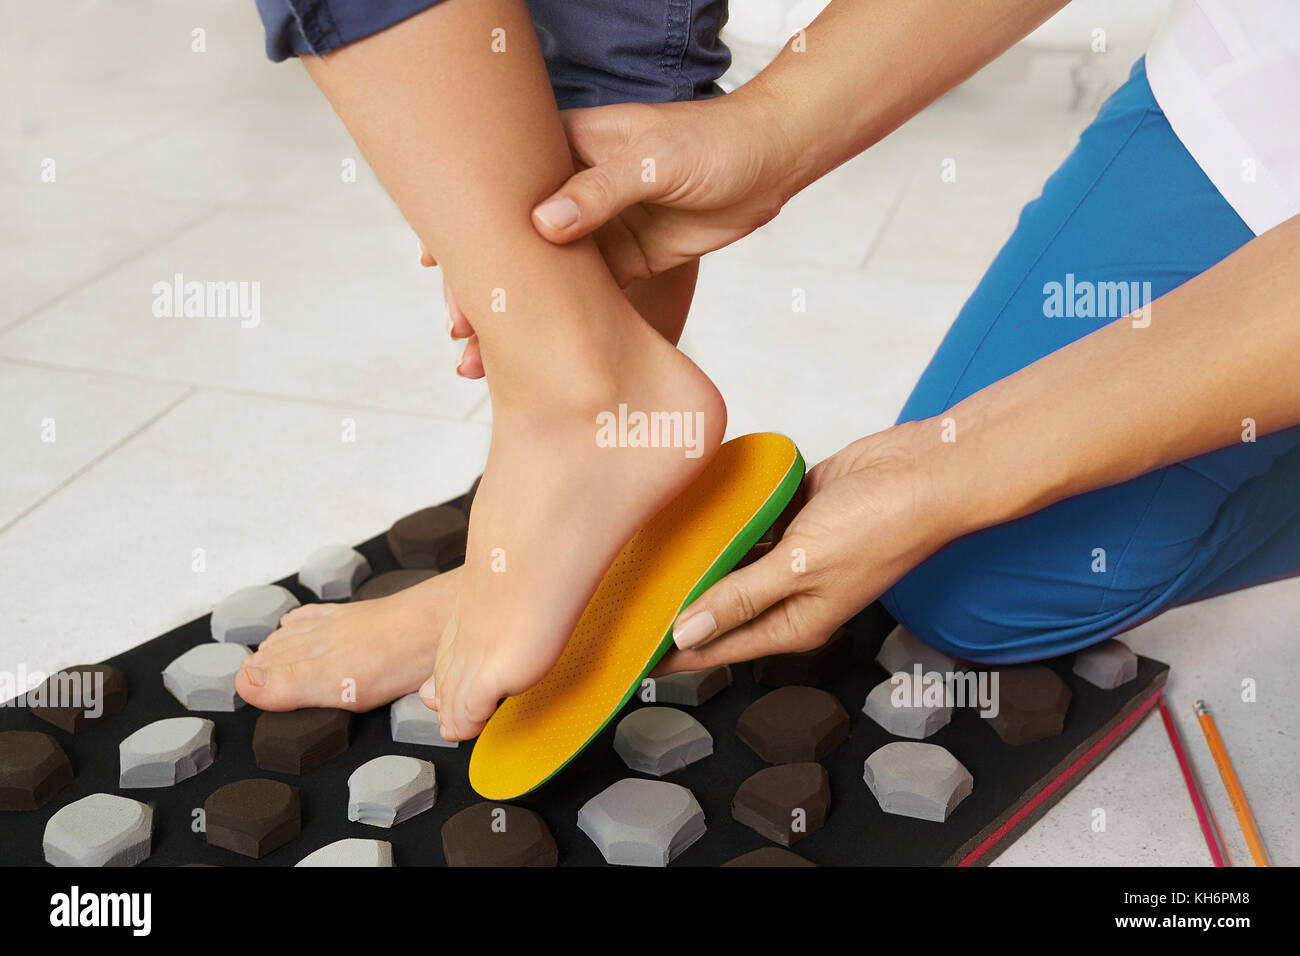 Orthopedic insoles. Fitting orthotic insoles. Flatfoot treatment. Podiatry clinic. - Stock Image